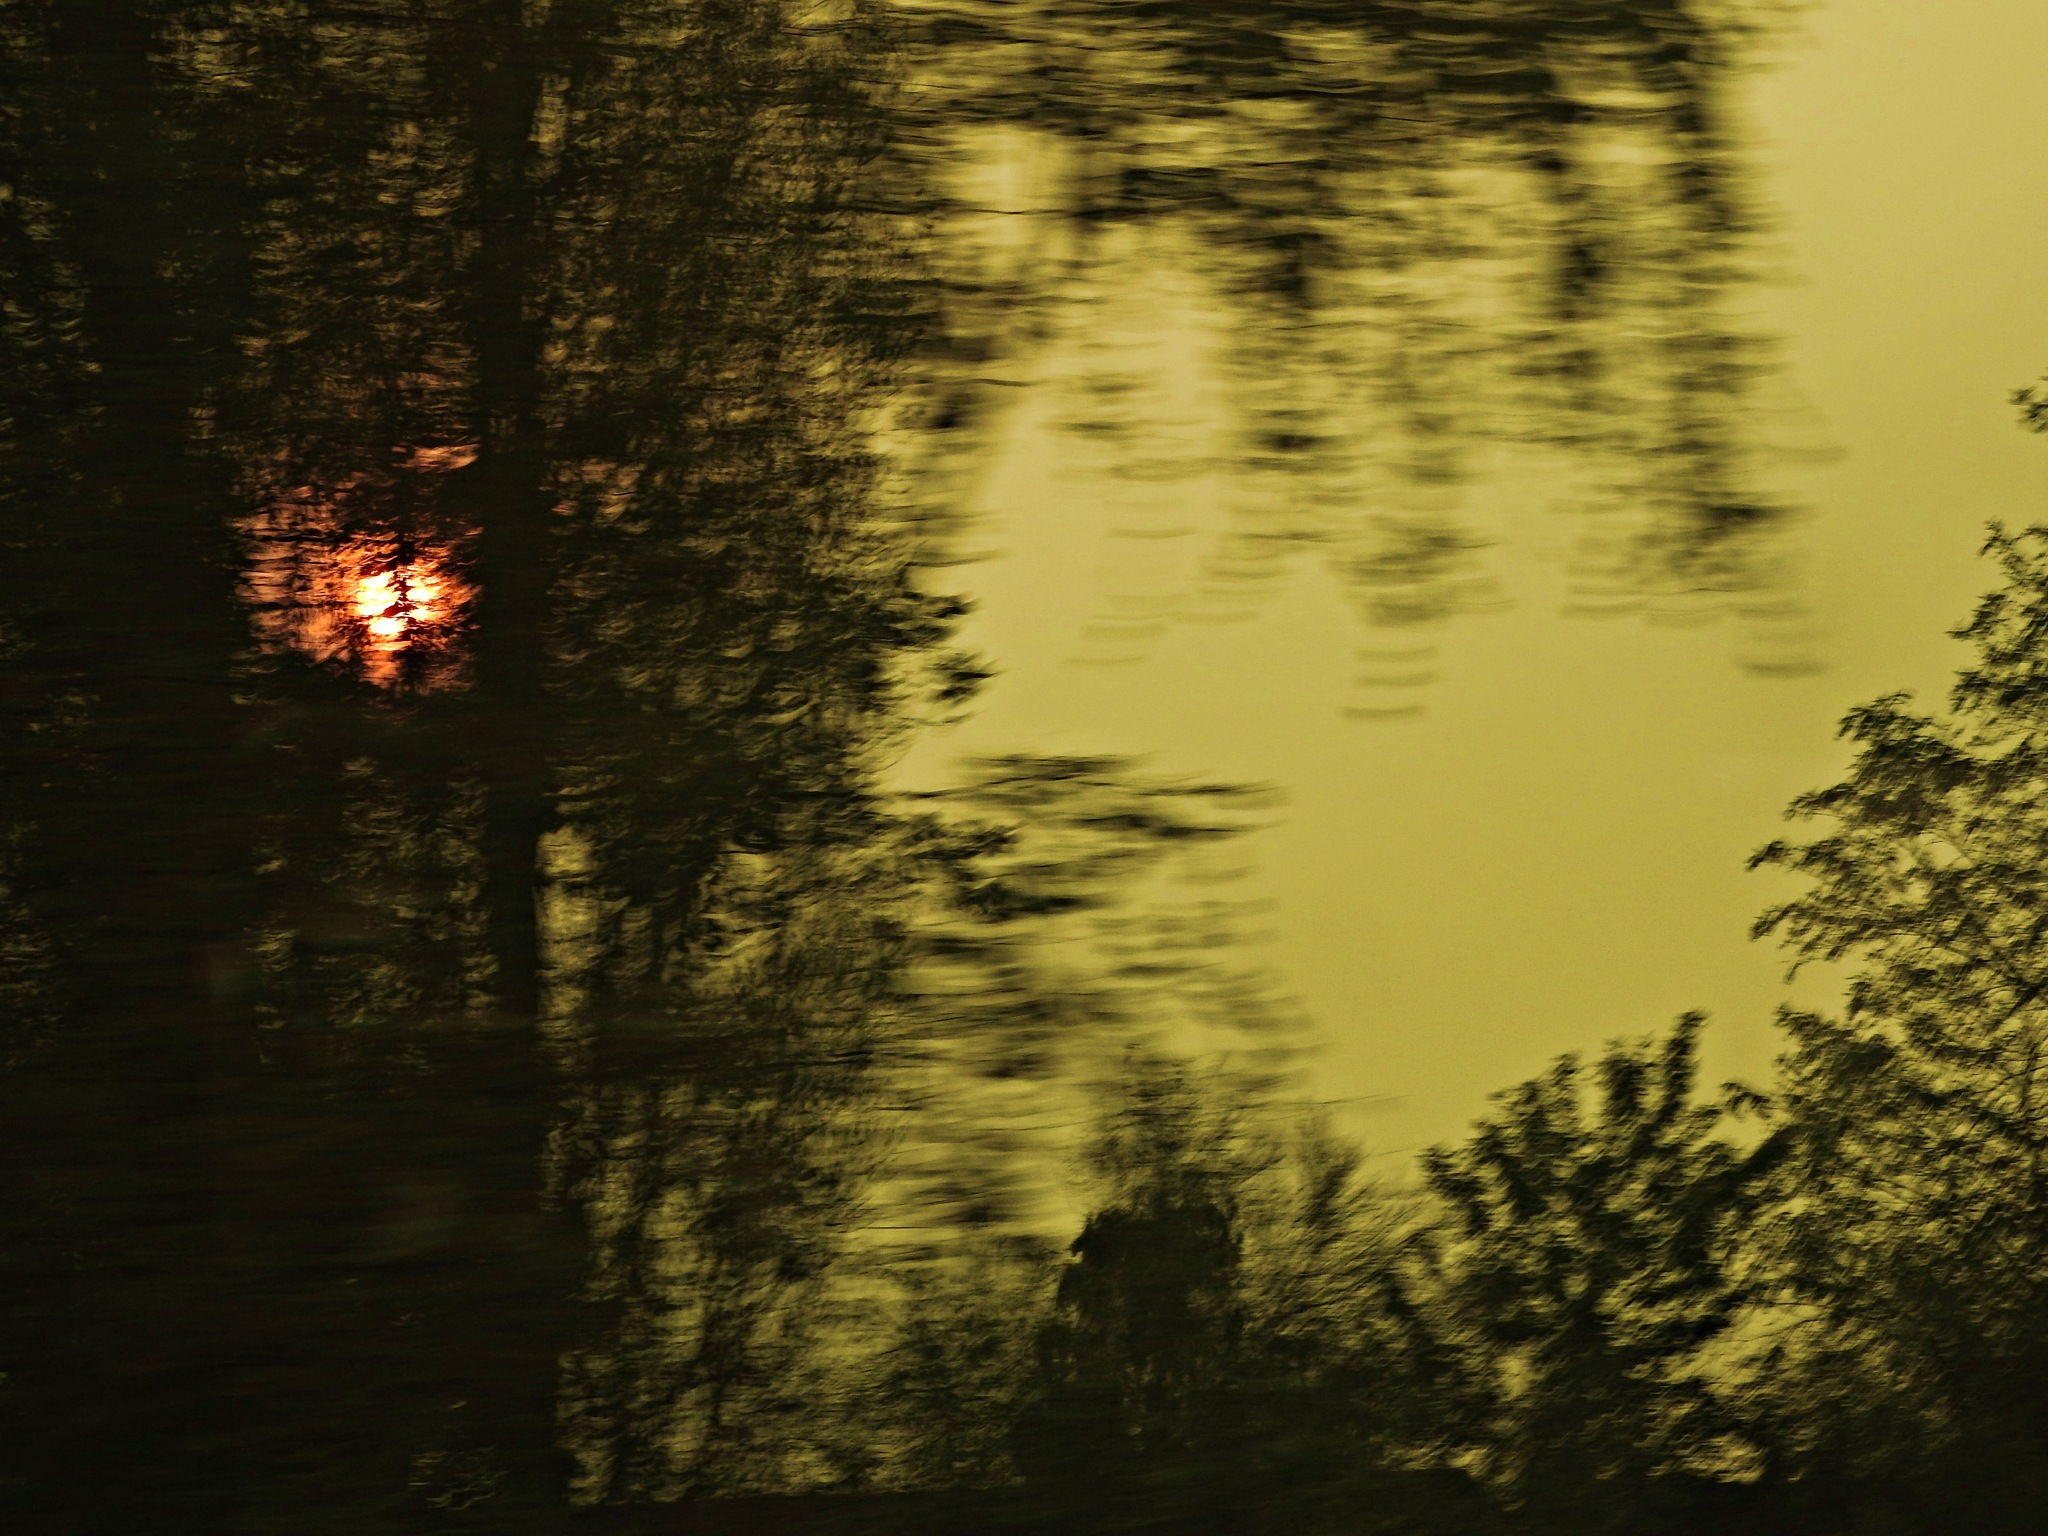 The red sun through the trees by Paolo Paparazzi